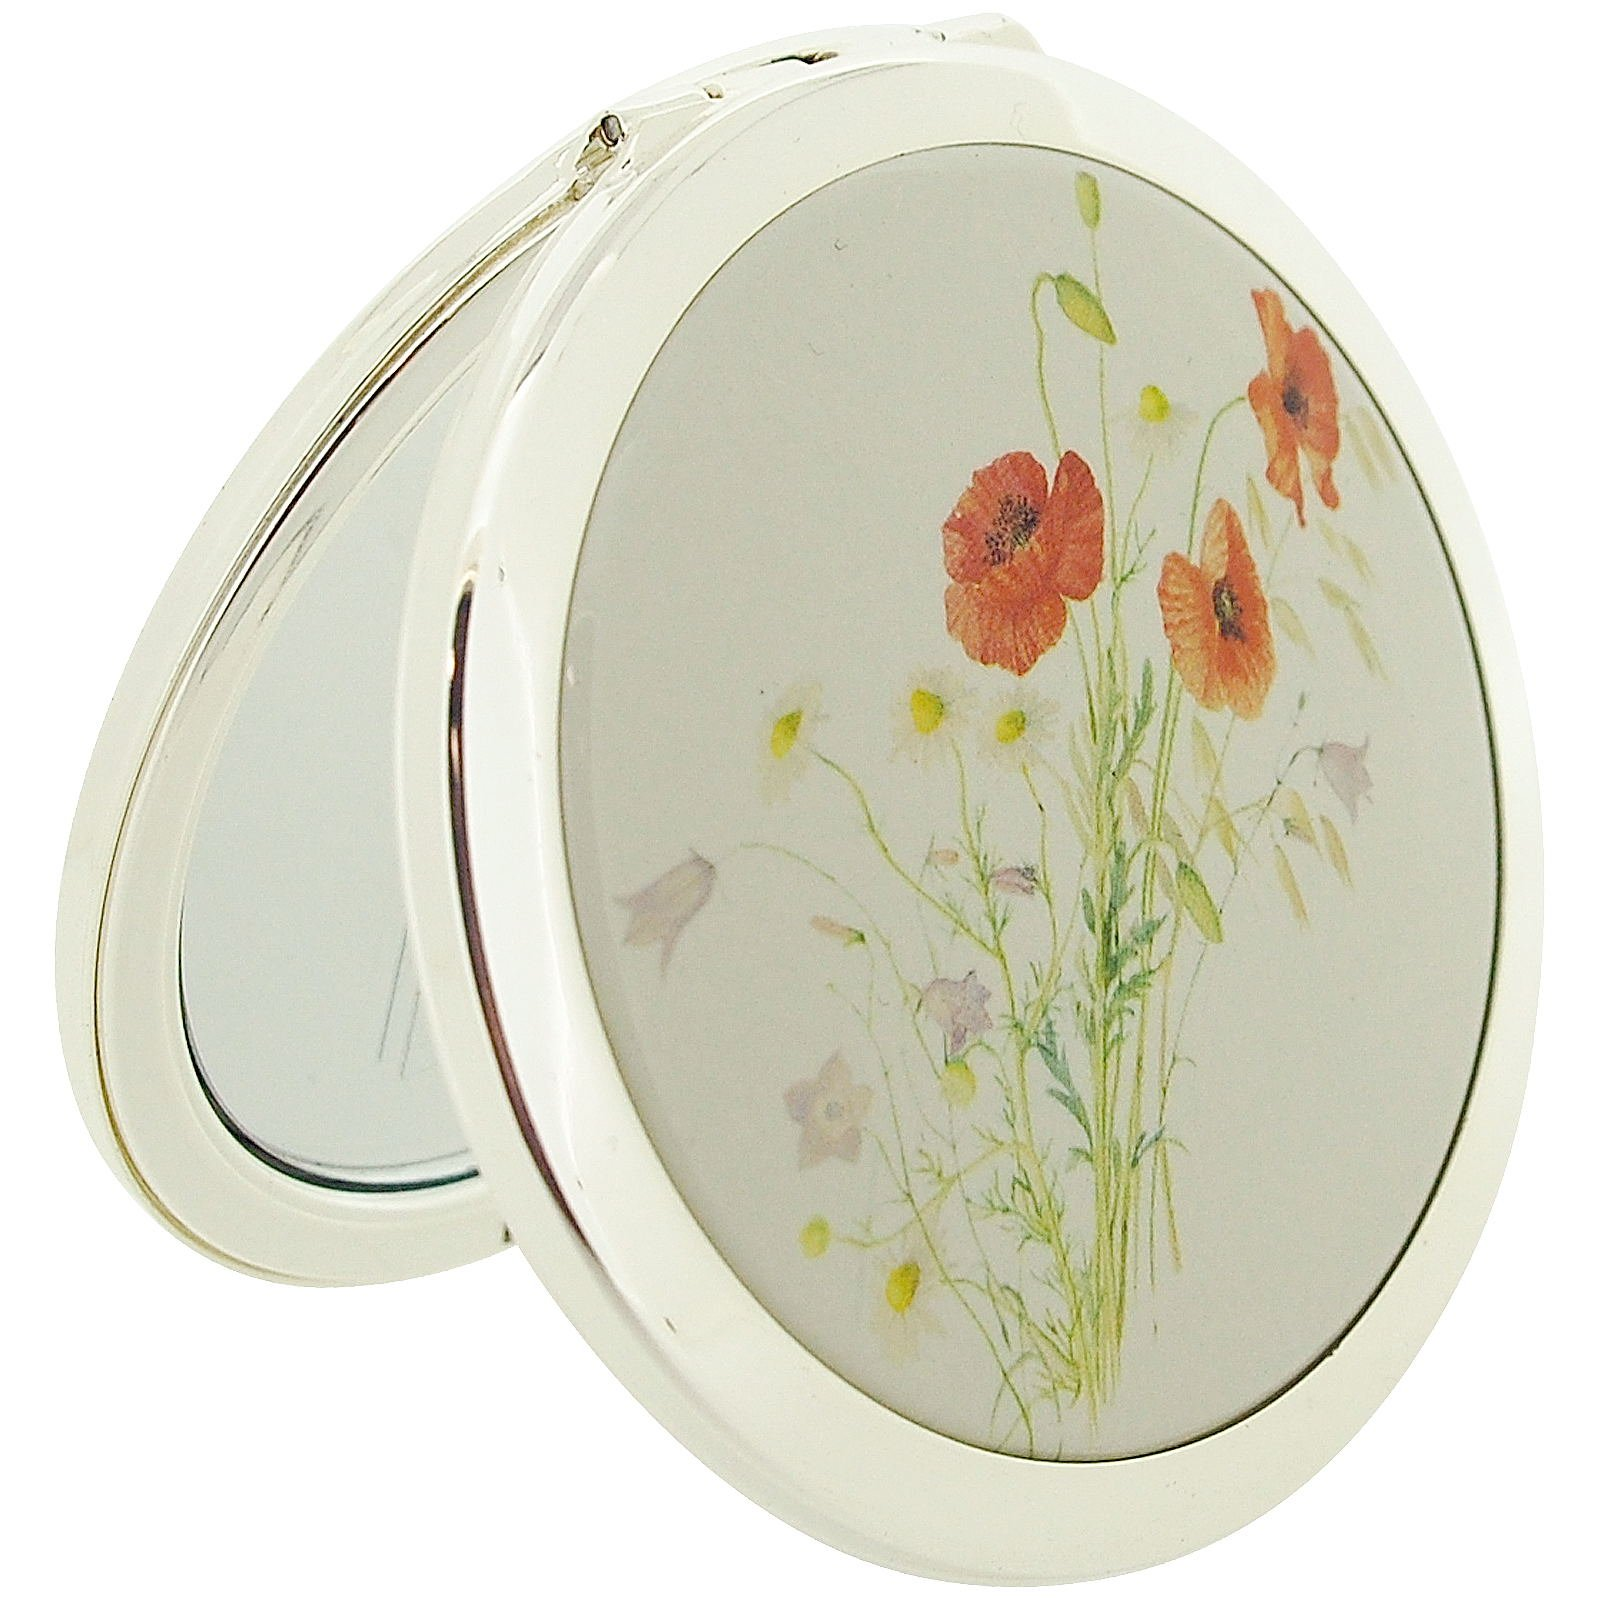 Stratton Compact Mirror Ladies Heritage Collection Poppy Design 3x Magnification Pocket Mirror ST1147